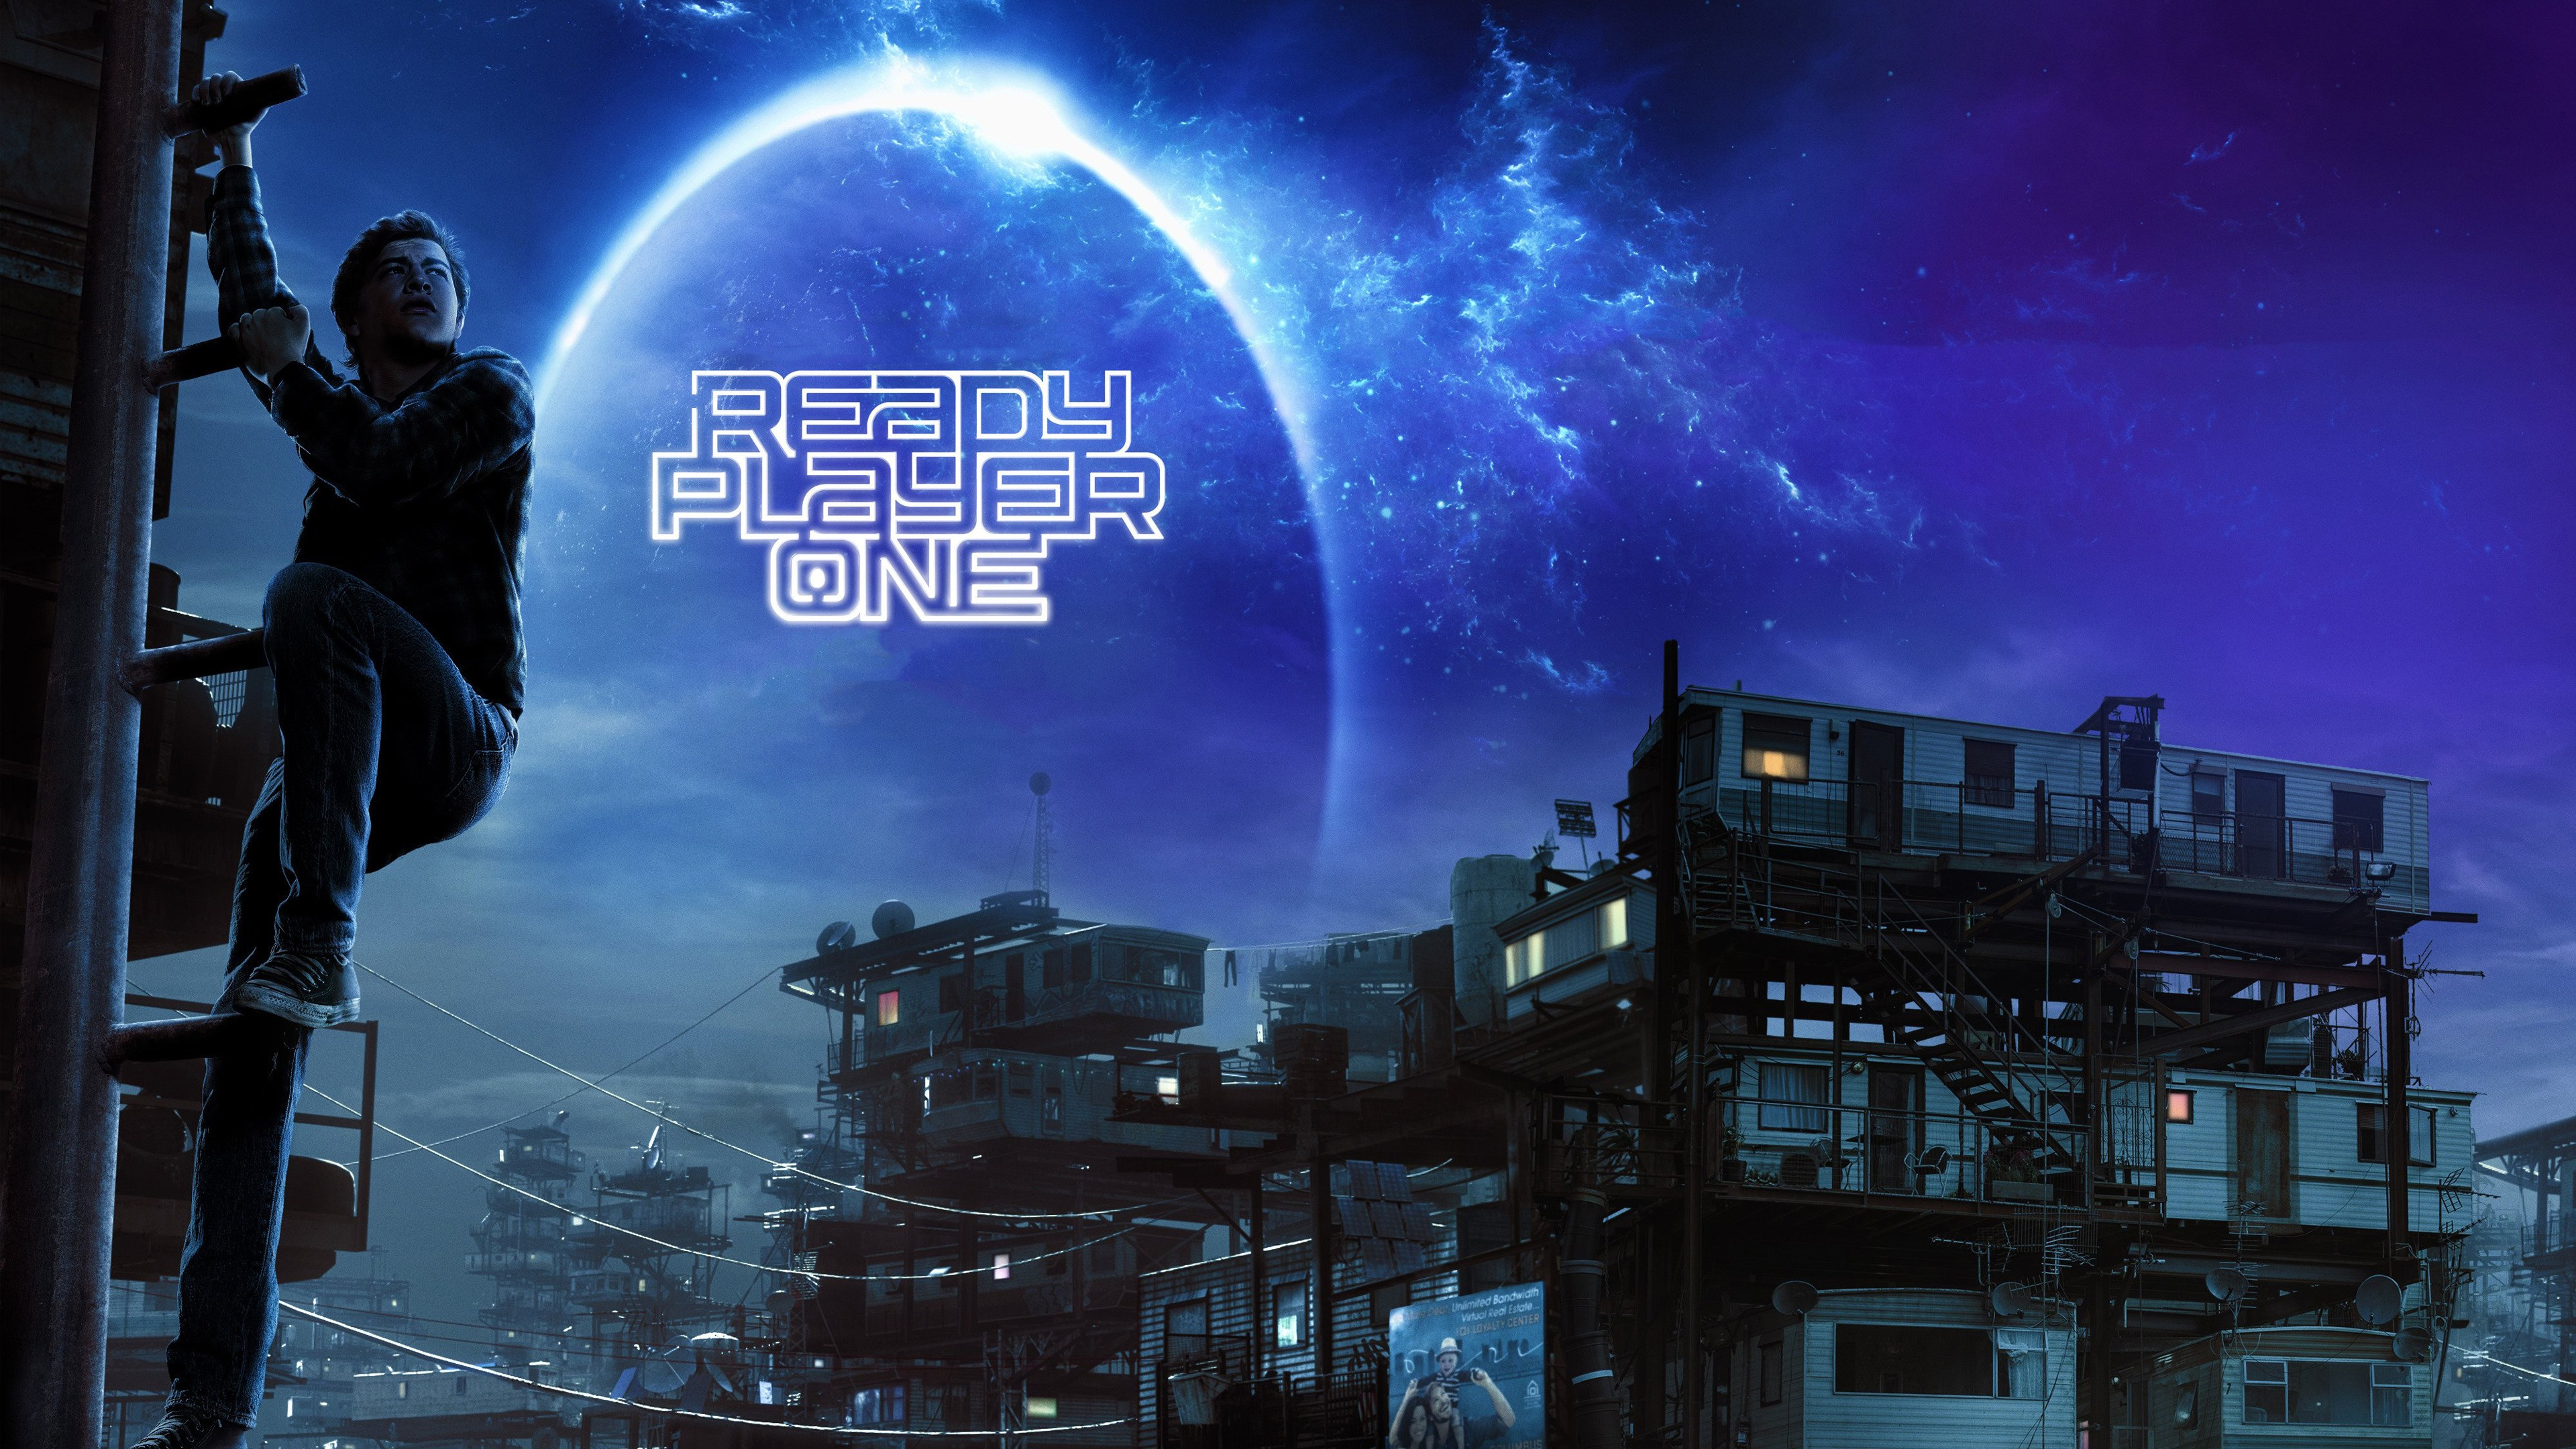 Ready Player One Quotes Love: Download HD Wallpaper For Free